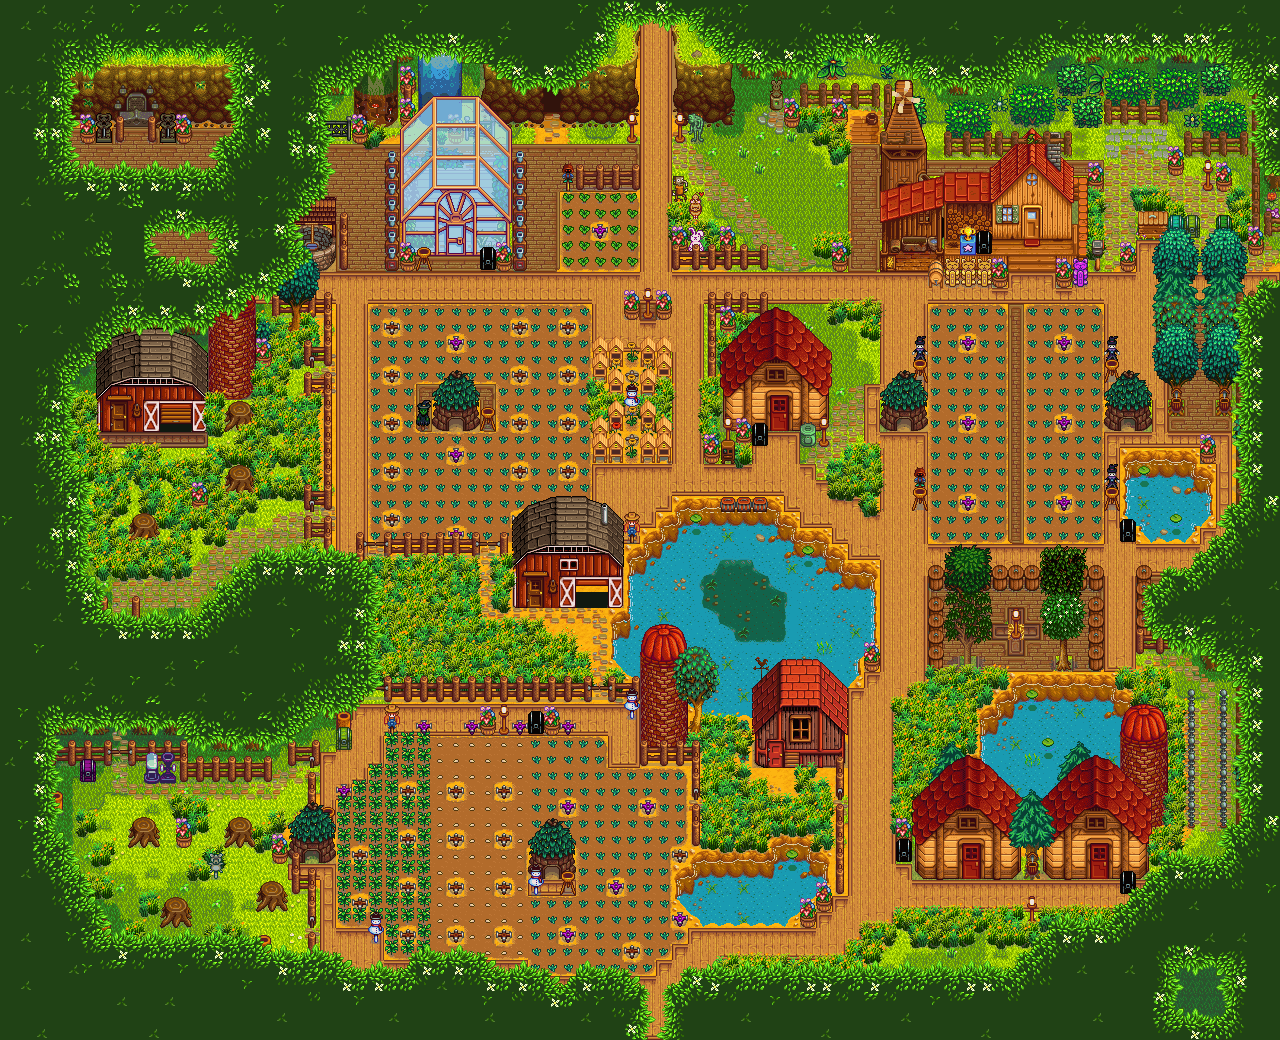 House design stardew valley - Summary Of Cold Comfort Farm By Meredith Stardew Valley